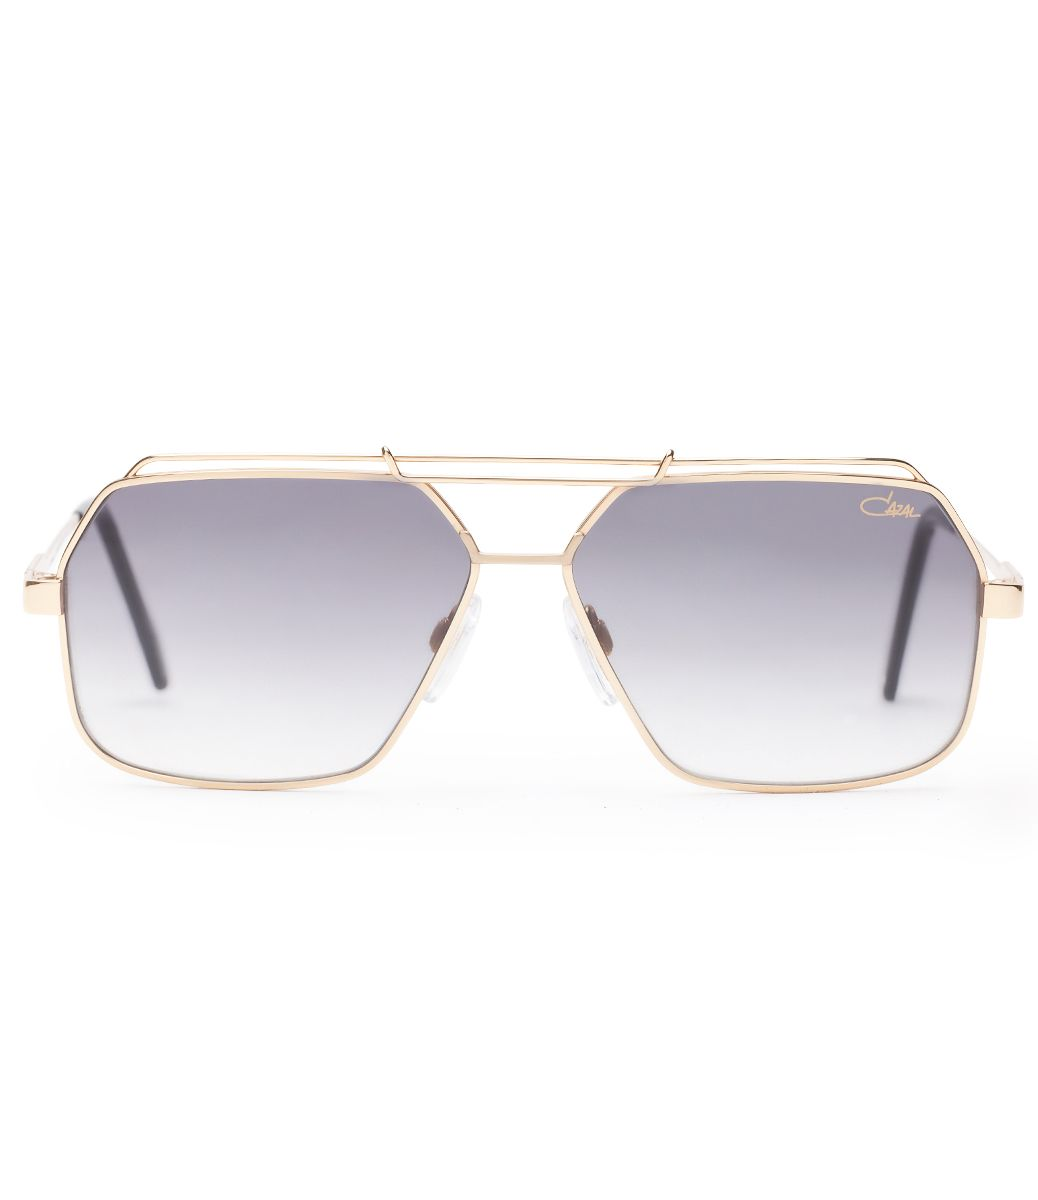 rectangular glasses for men with round face